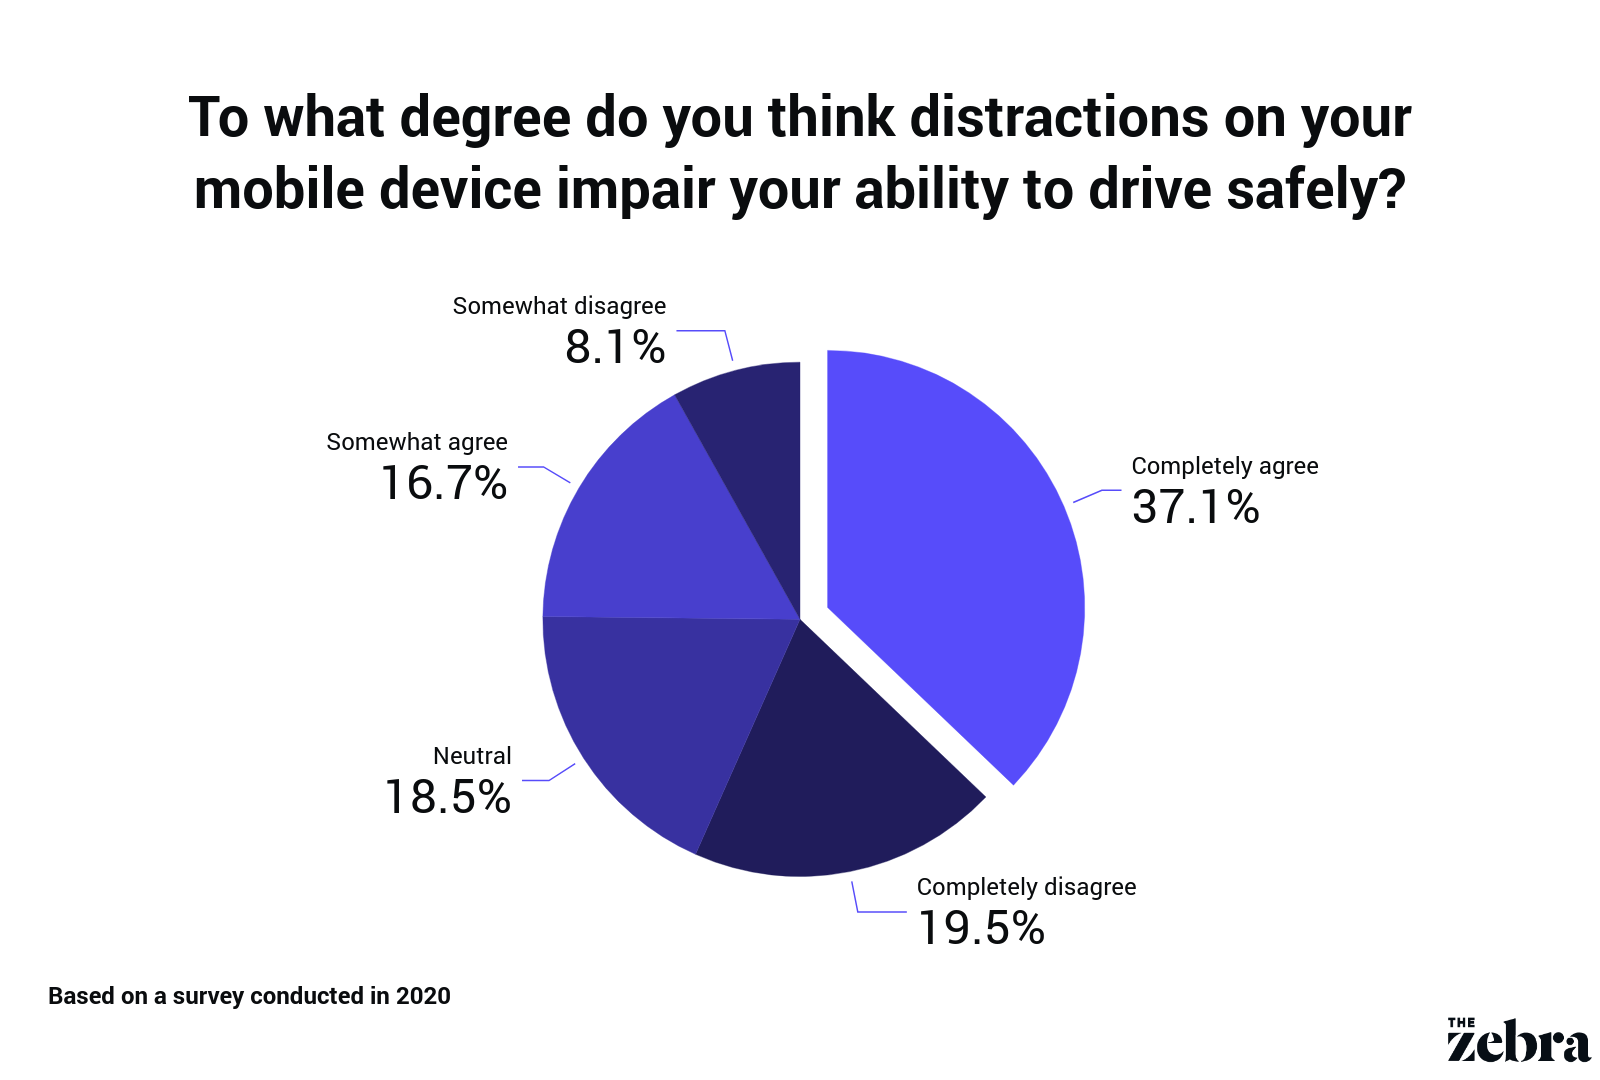 pie chart displaying degree of distracted driving caused by phone usage